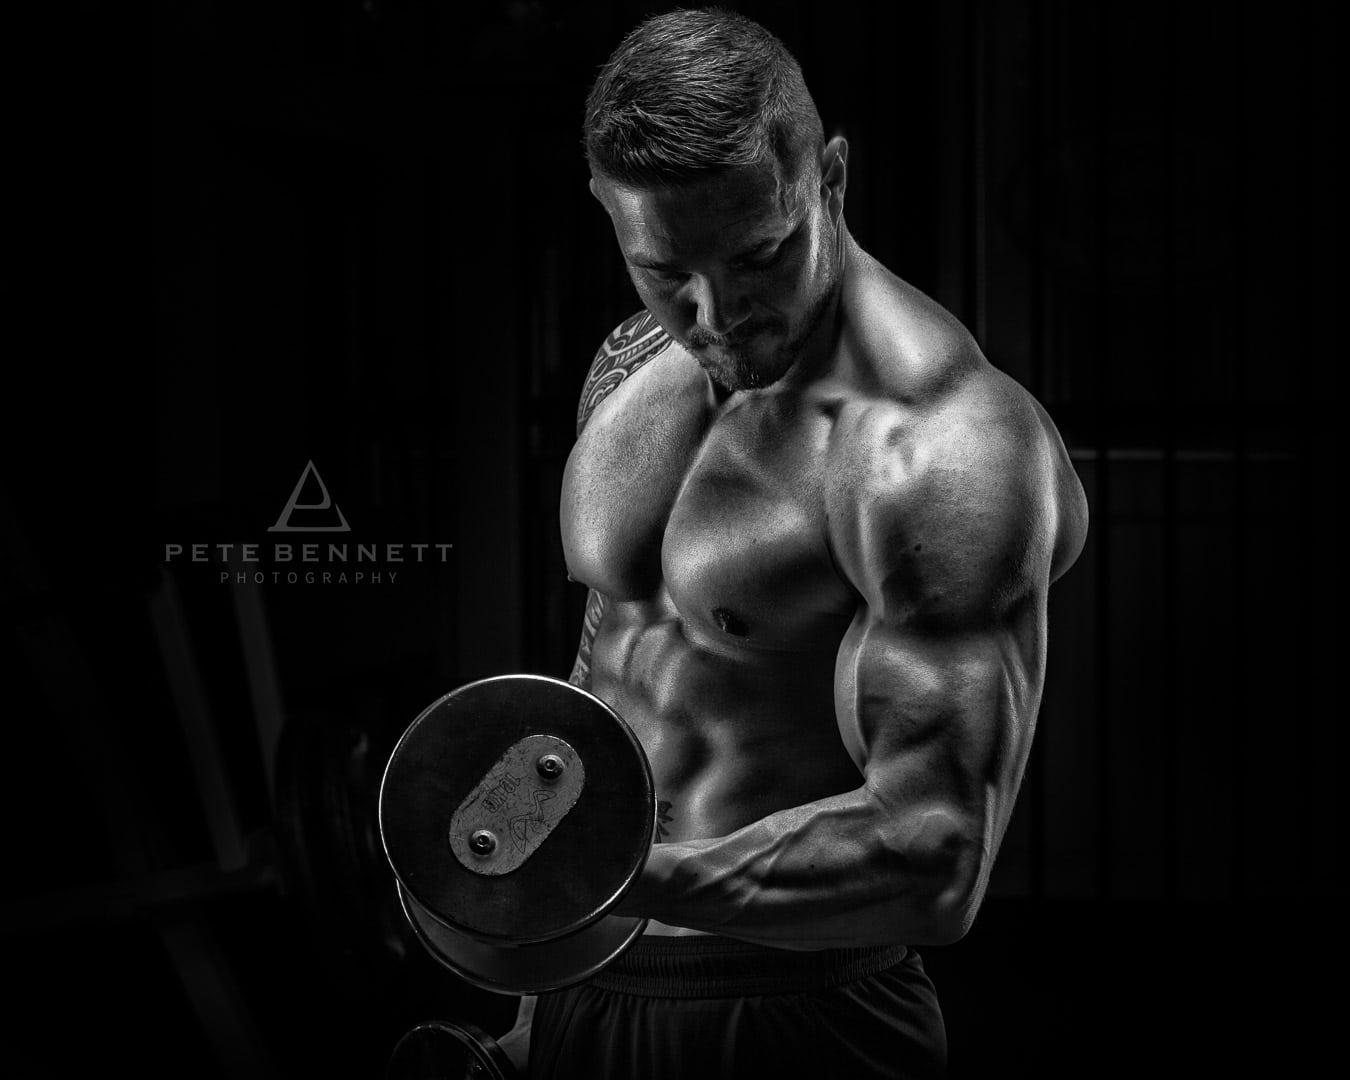 Black and white image of dean dark body building photoshoot